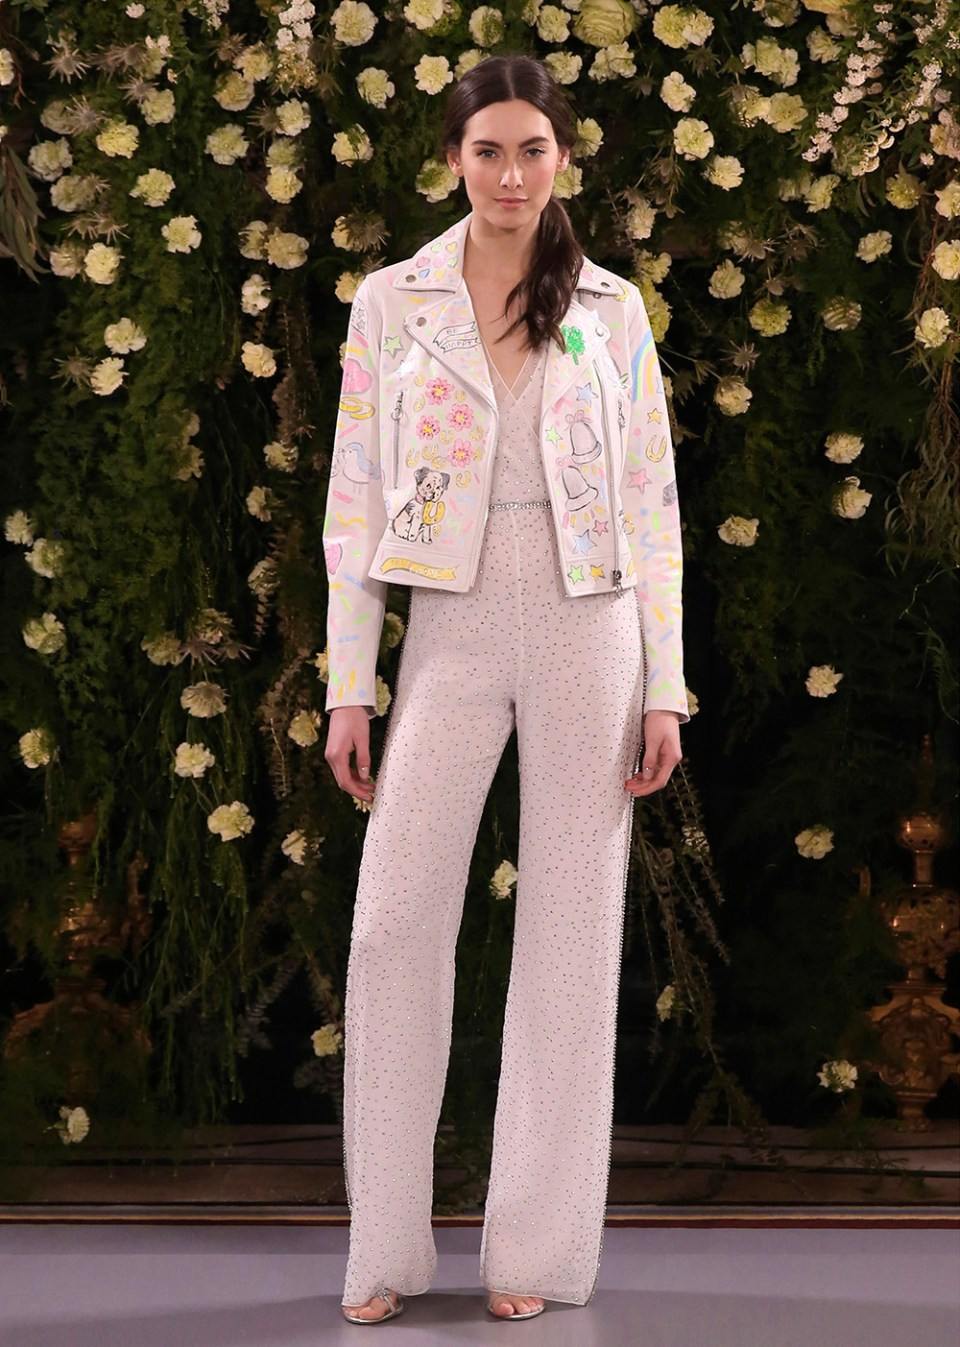 Forget Me Not – Jenny Packham 2019 Bridal Collection. www.theweddingnotebook.com